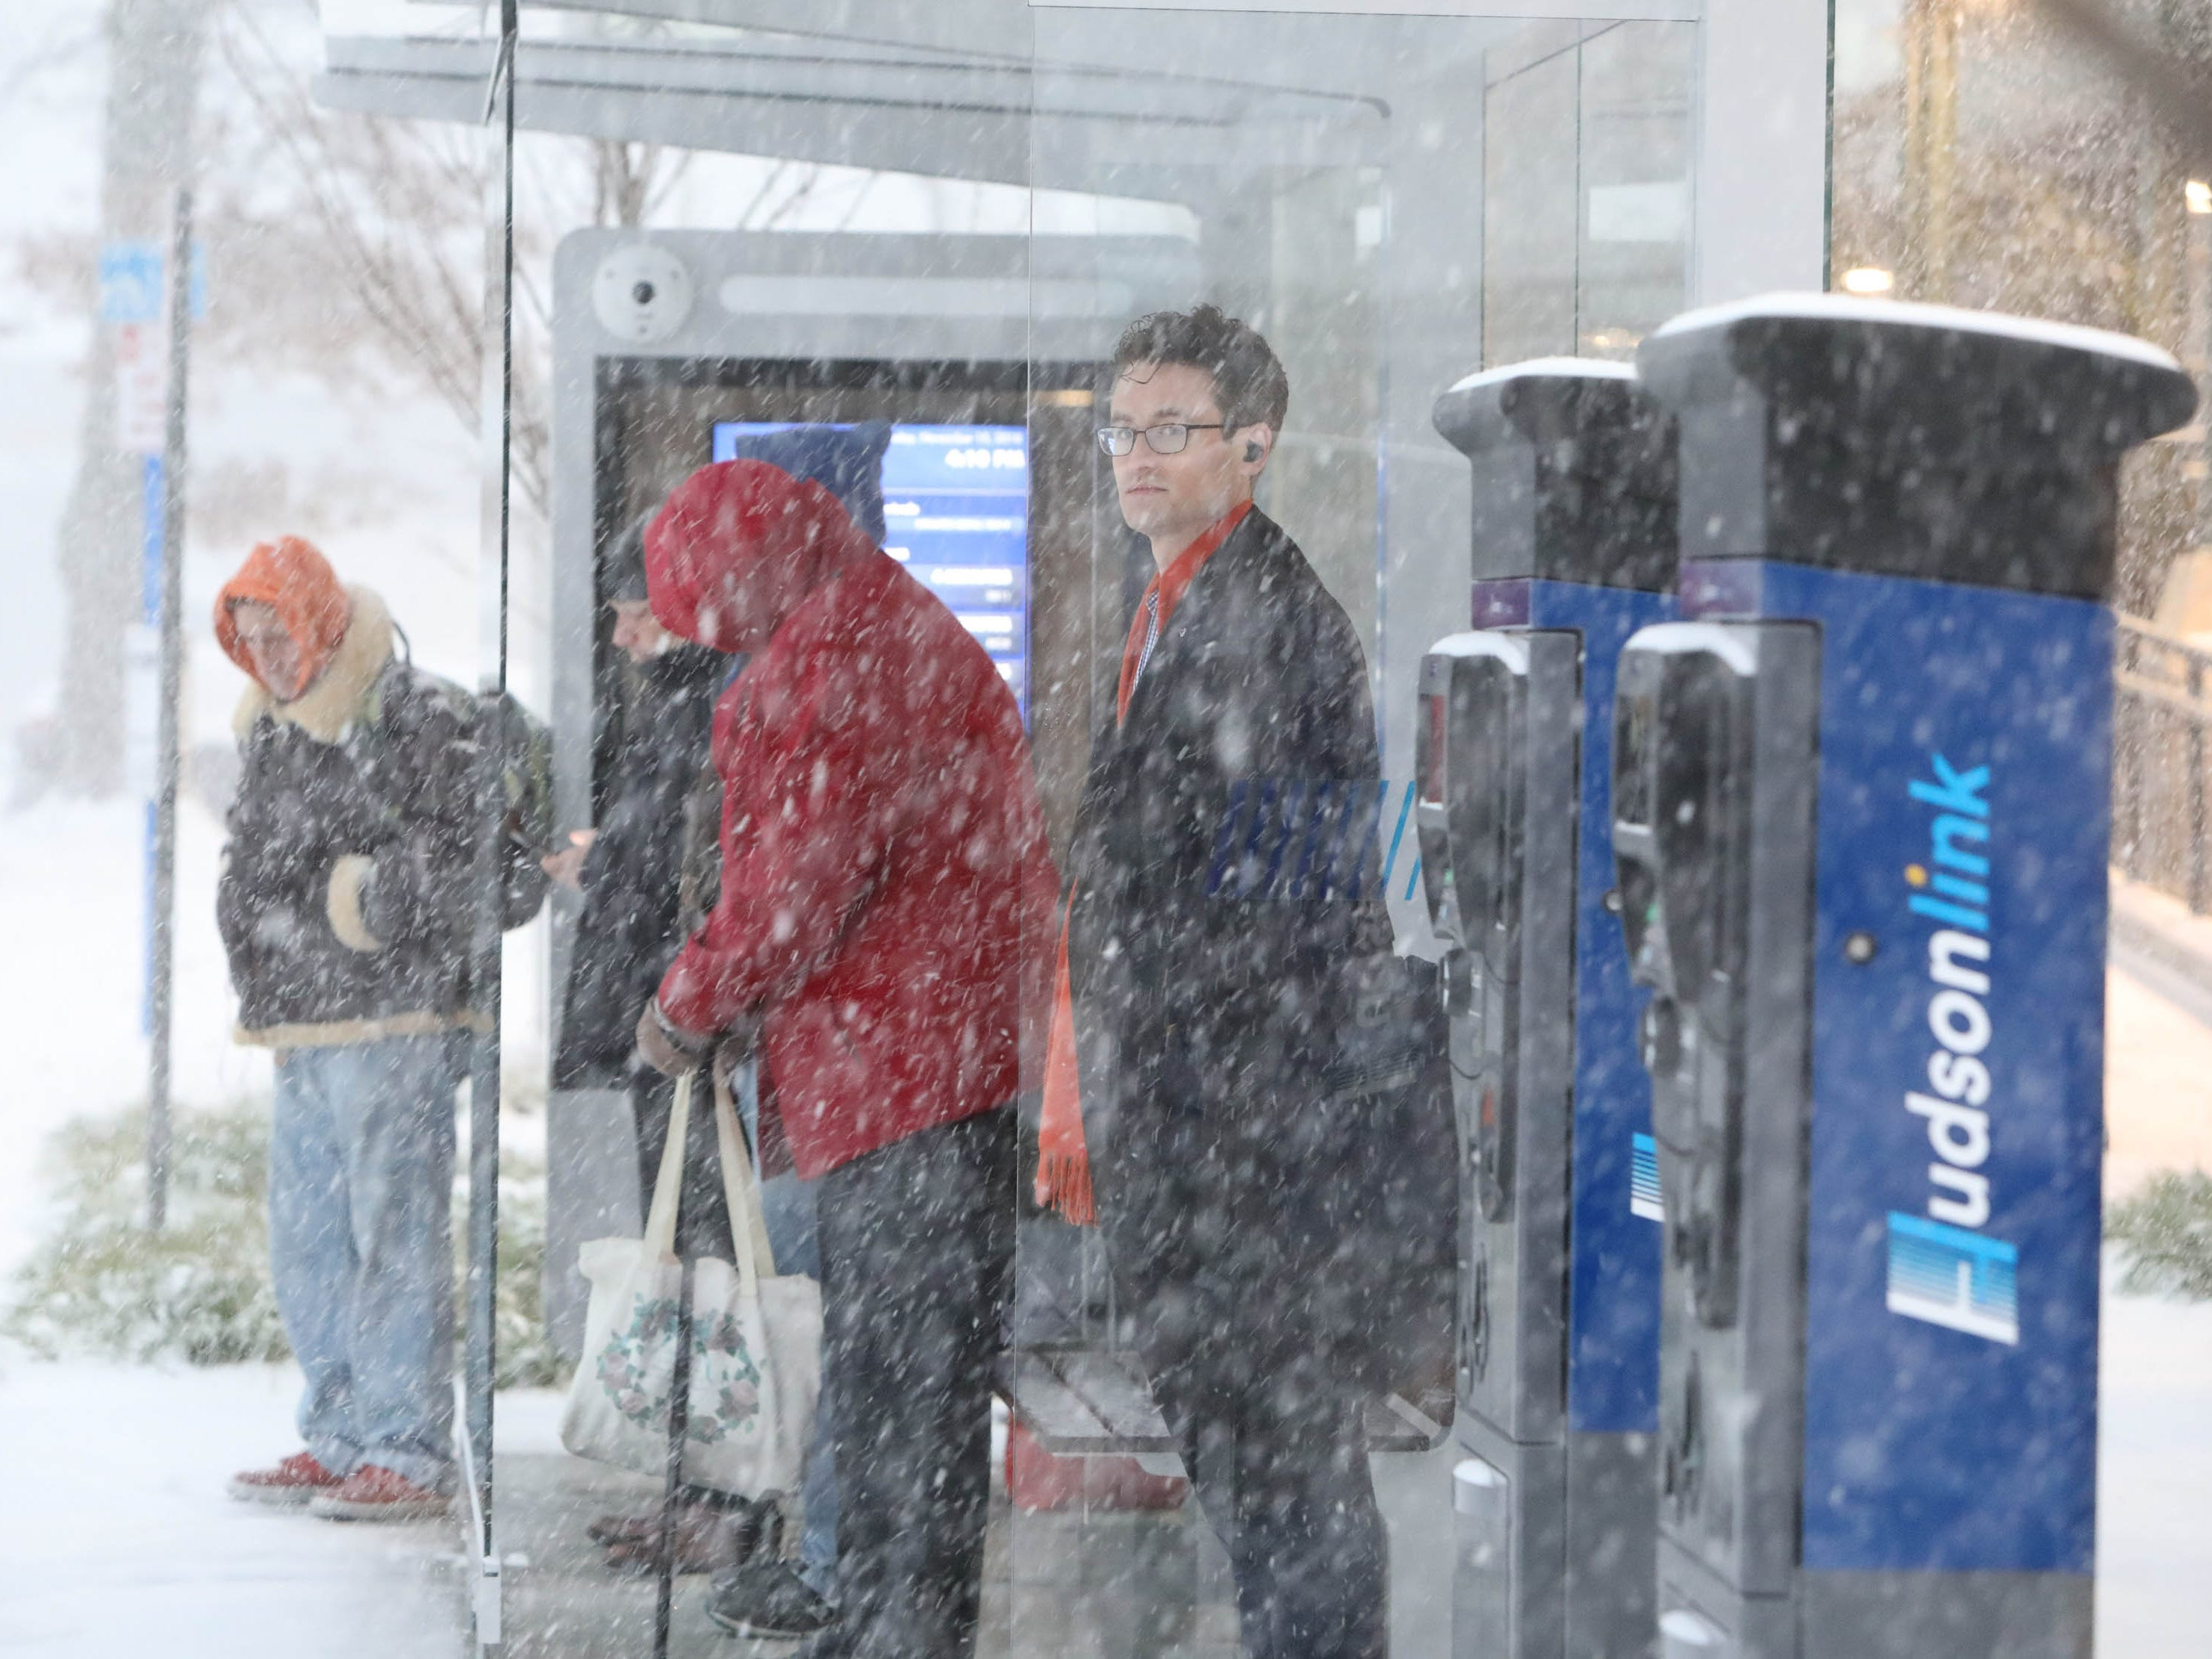 Commuters wait for the Hudson Link in Tarrytown, N.Y. which is operating on a delay during a steady snowfall for the evening commute Nov. 15, 2108.